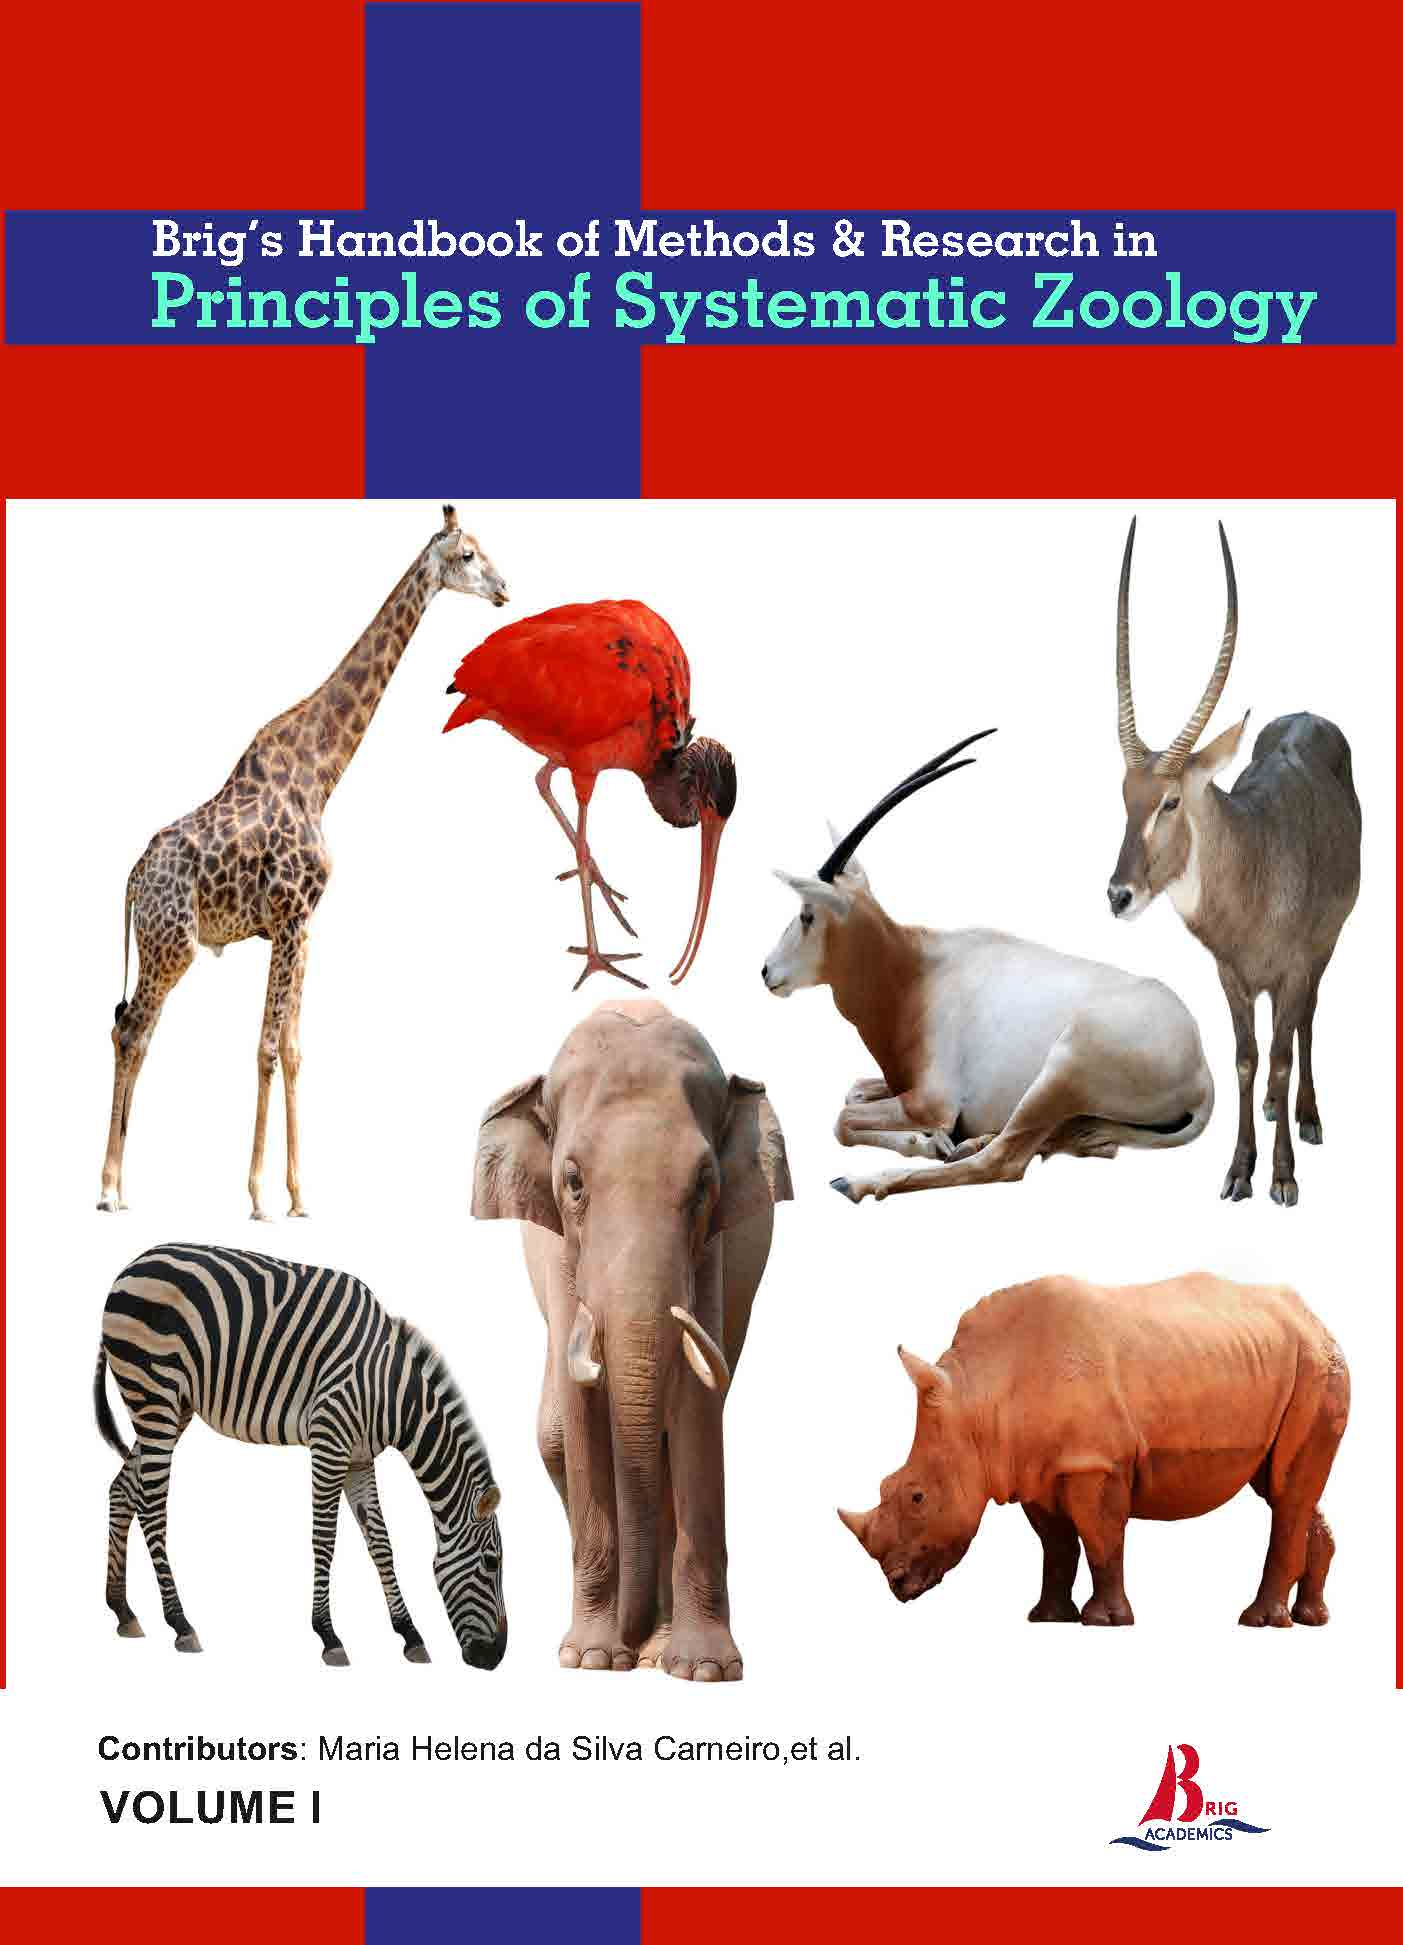 Brig's Handbook of Methods & Research in Principles of Systematic Zoology